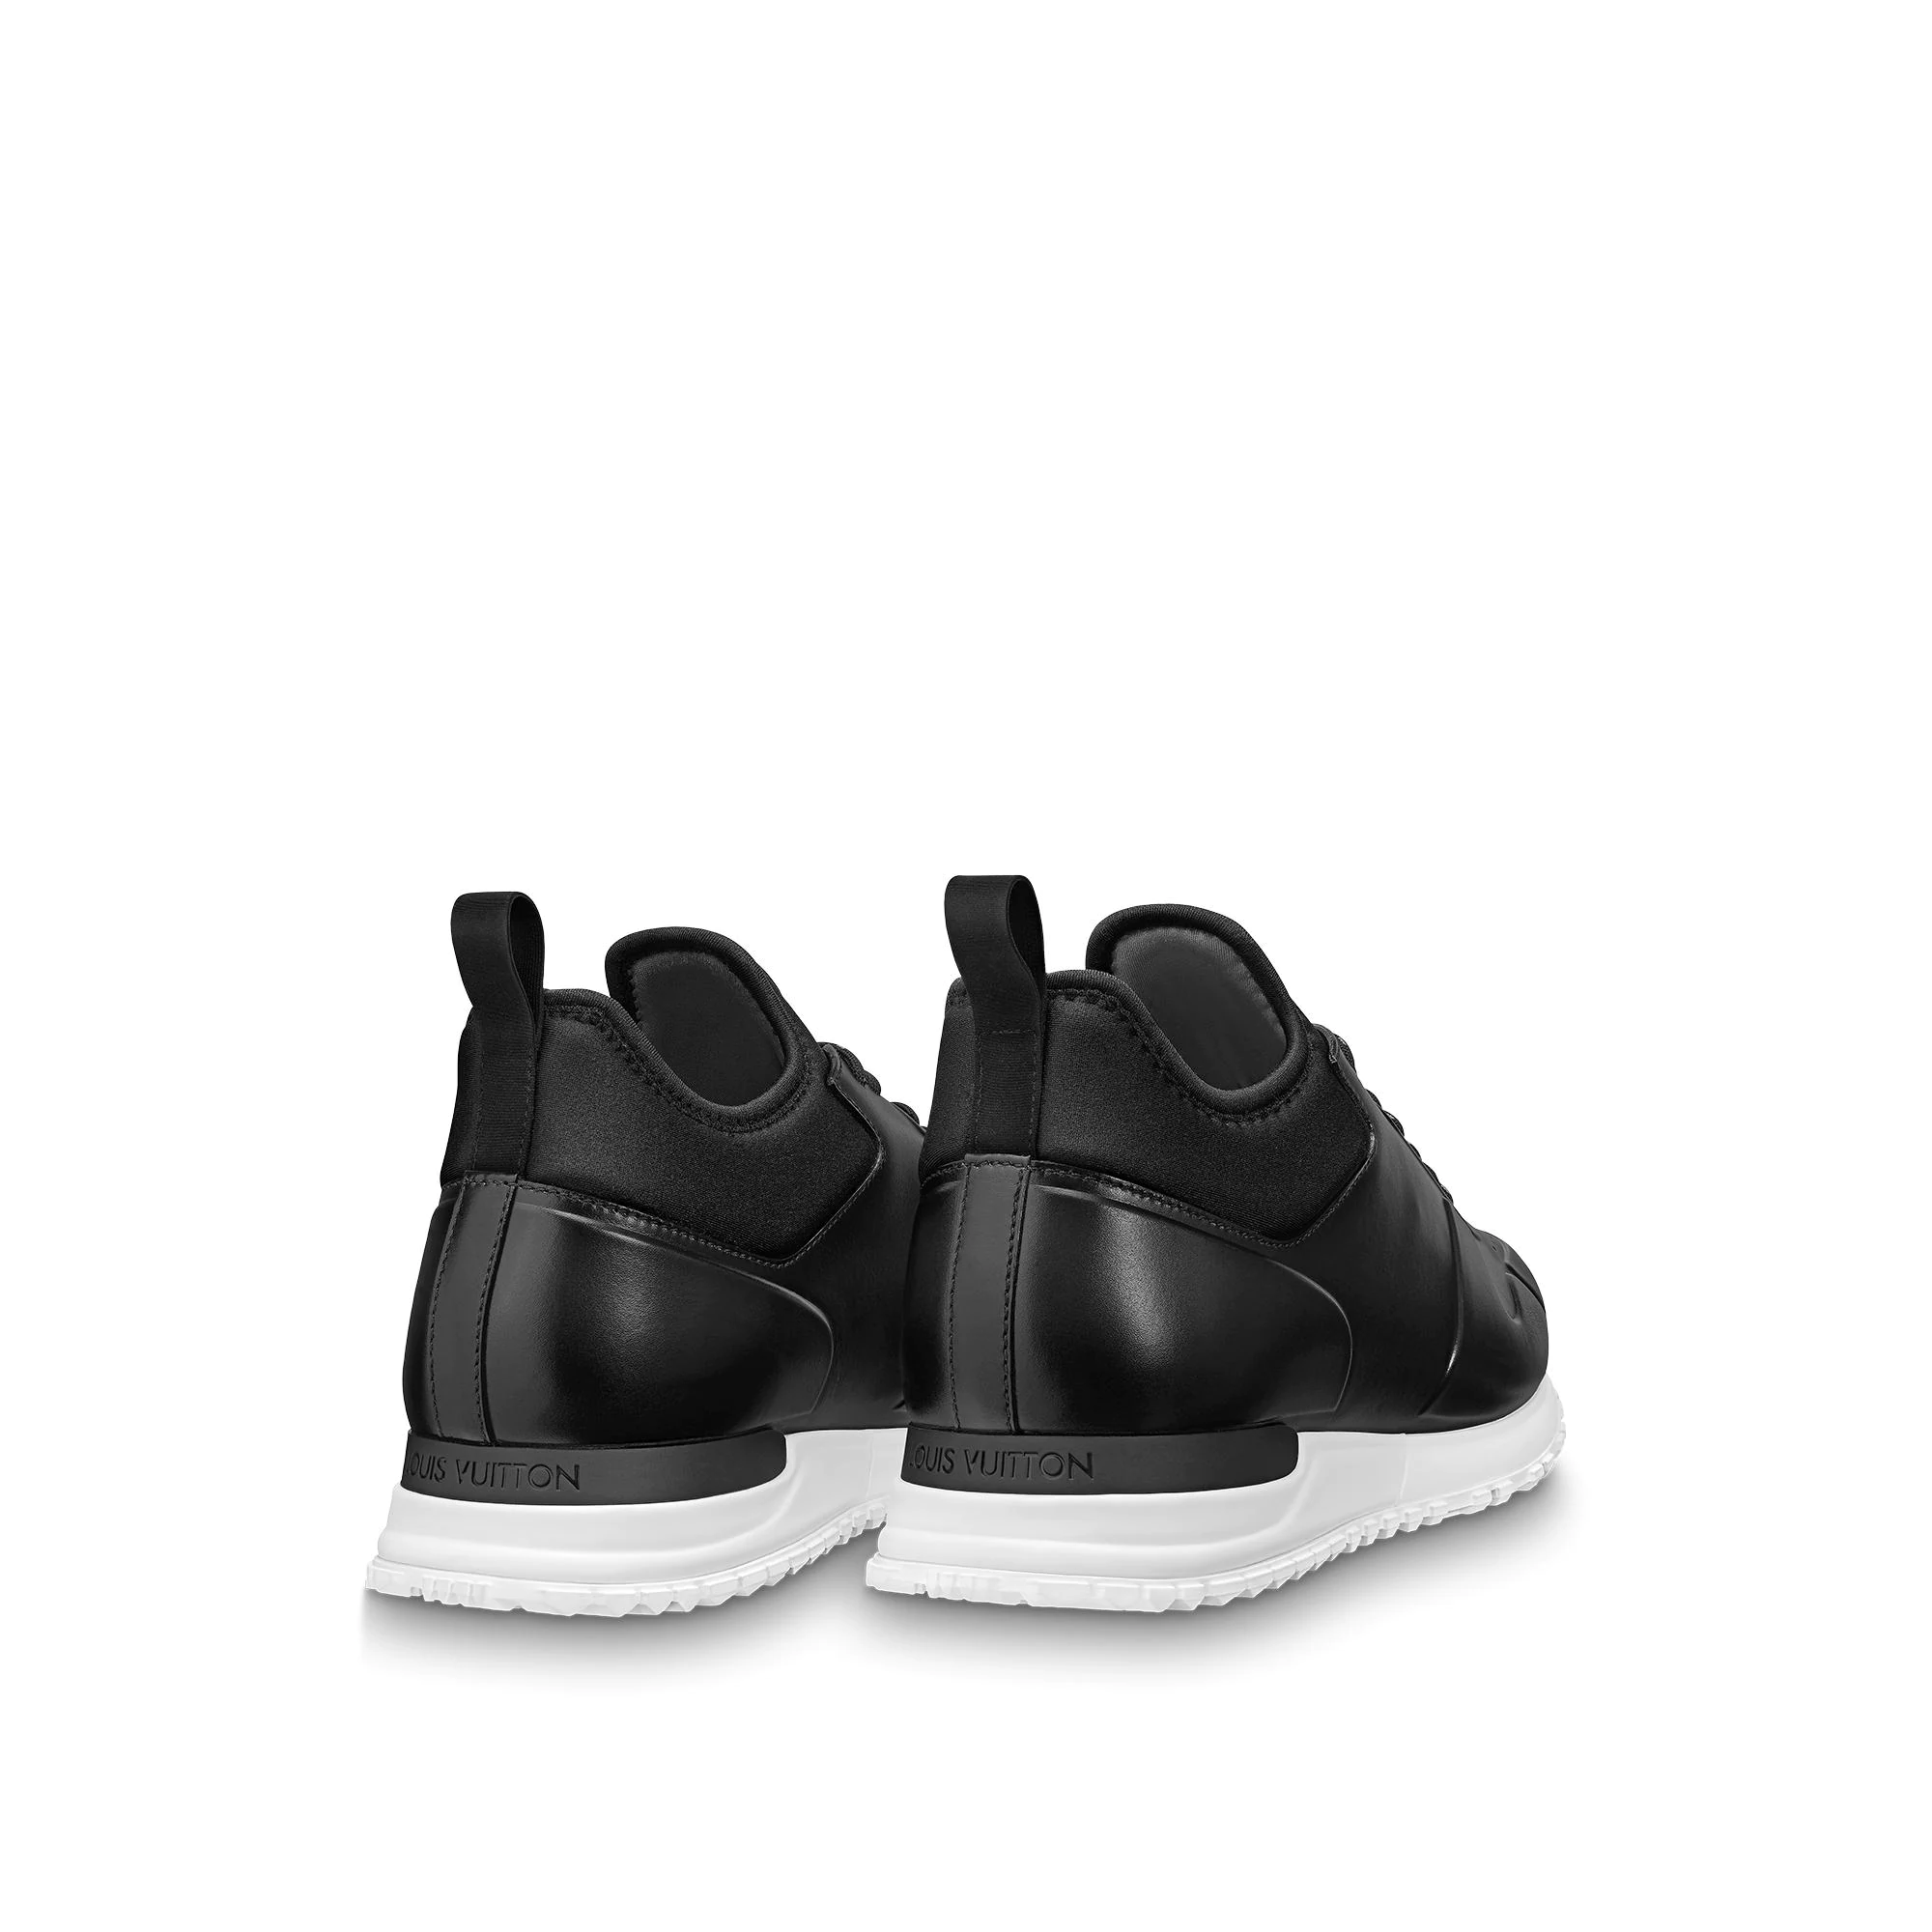 유럽직배송 루이비통 LOUIS VUITTON Run Away Trainers 1A5YFR